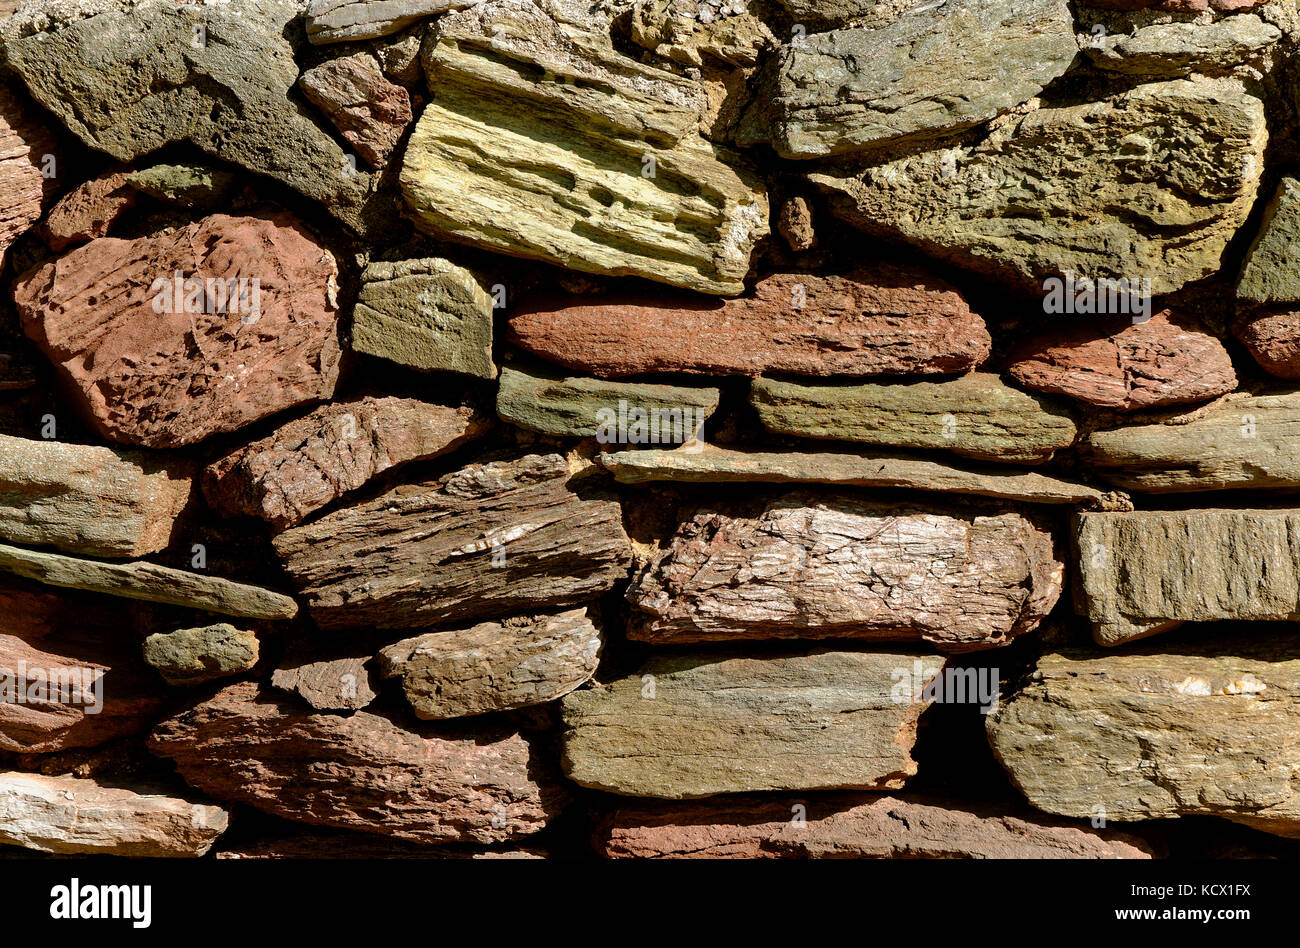 Mur en pierre locale en Angleterre devon uk Photo Stock